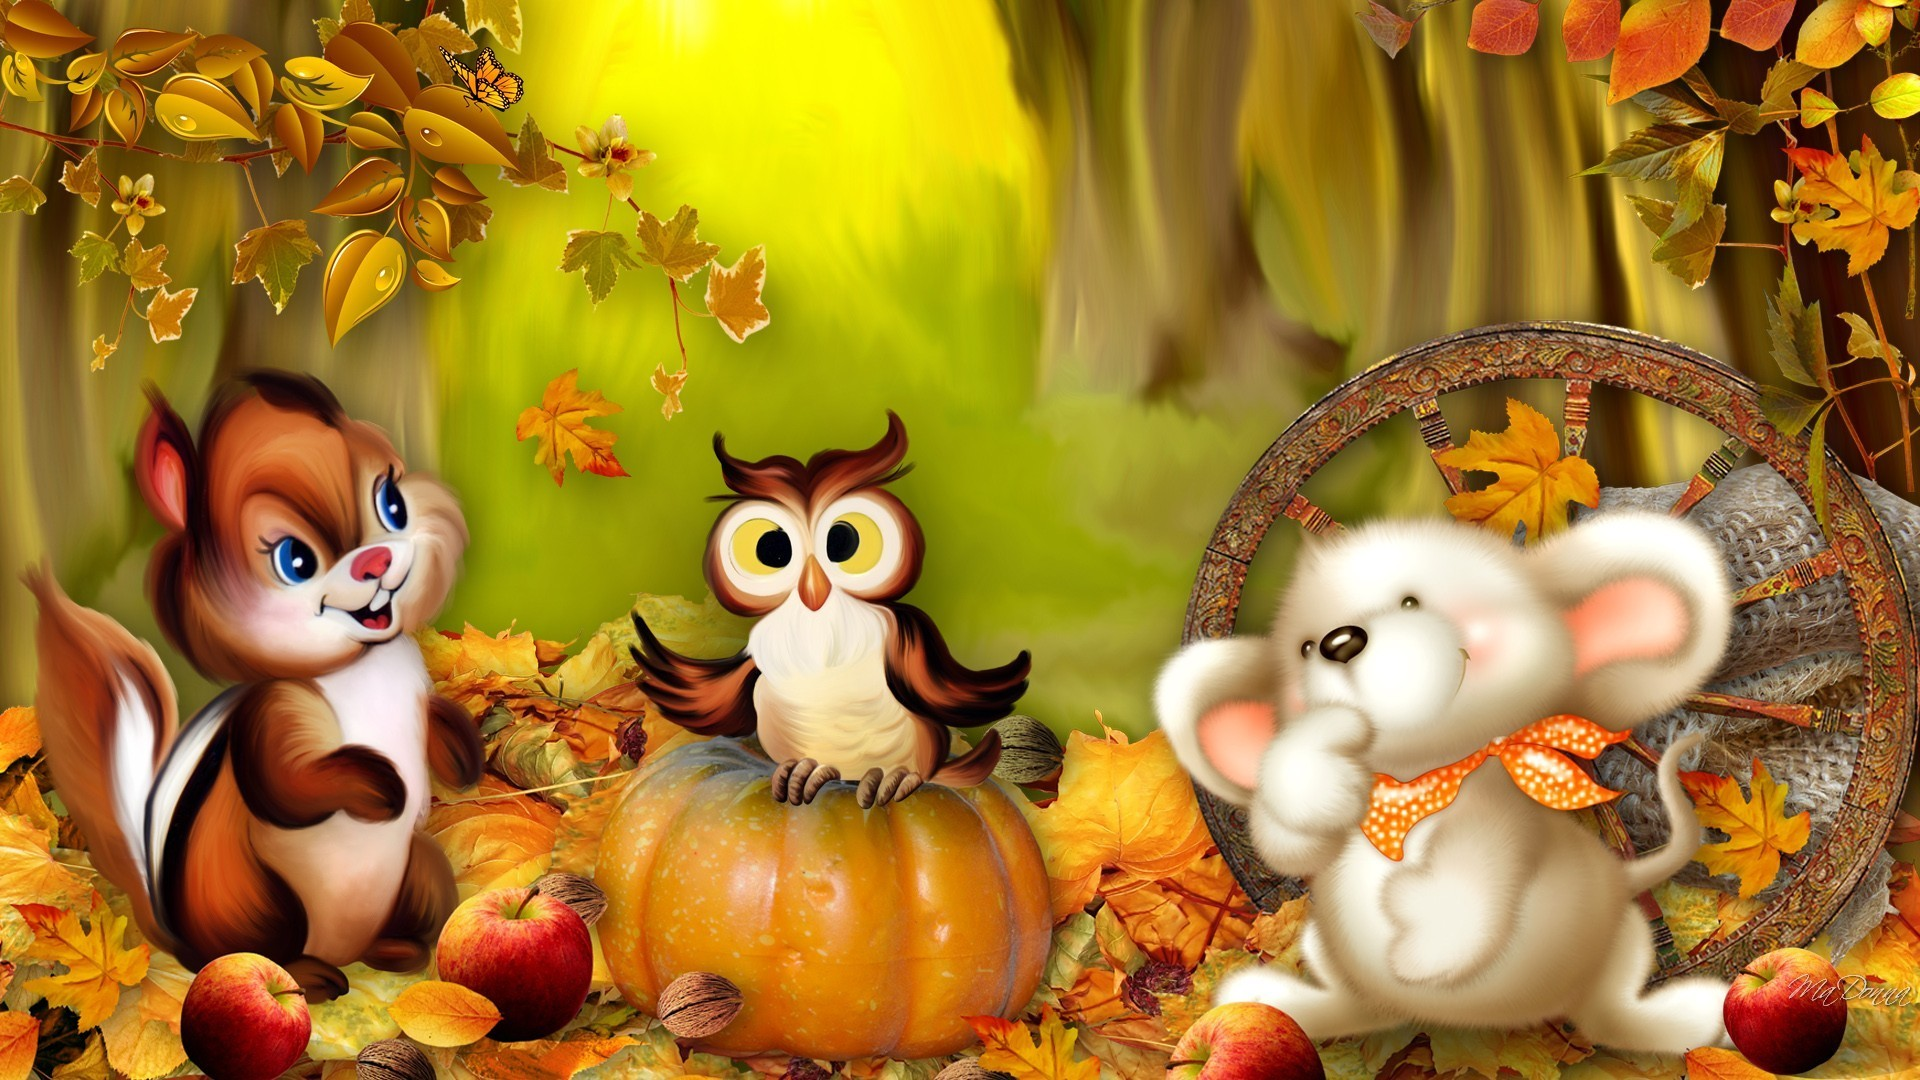 Fall Wallpaper Backgrounds With Pumpkins (55+ Images